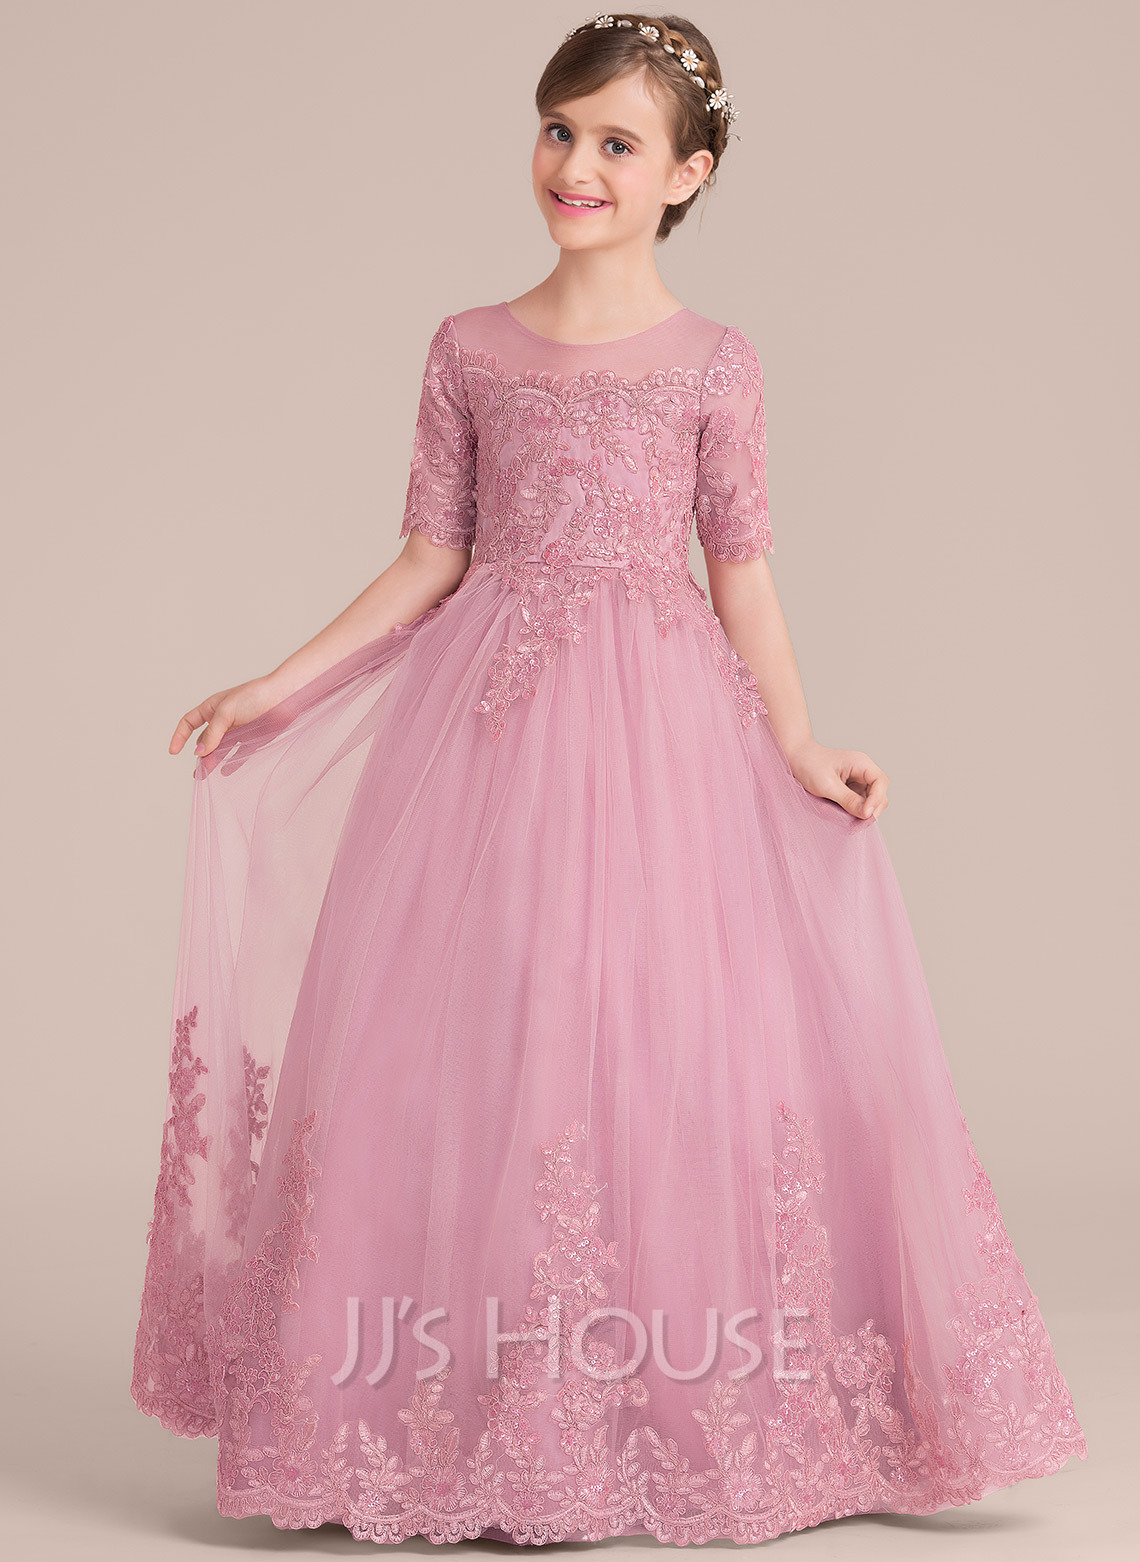 Find Affordable Flower Girl Dresses | JJ\'sHouse